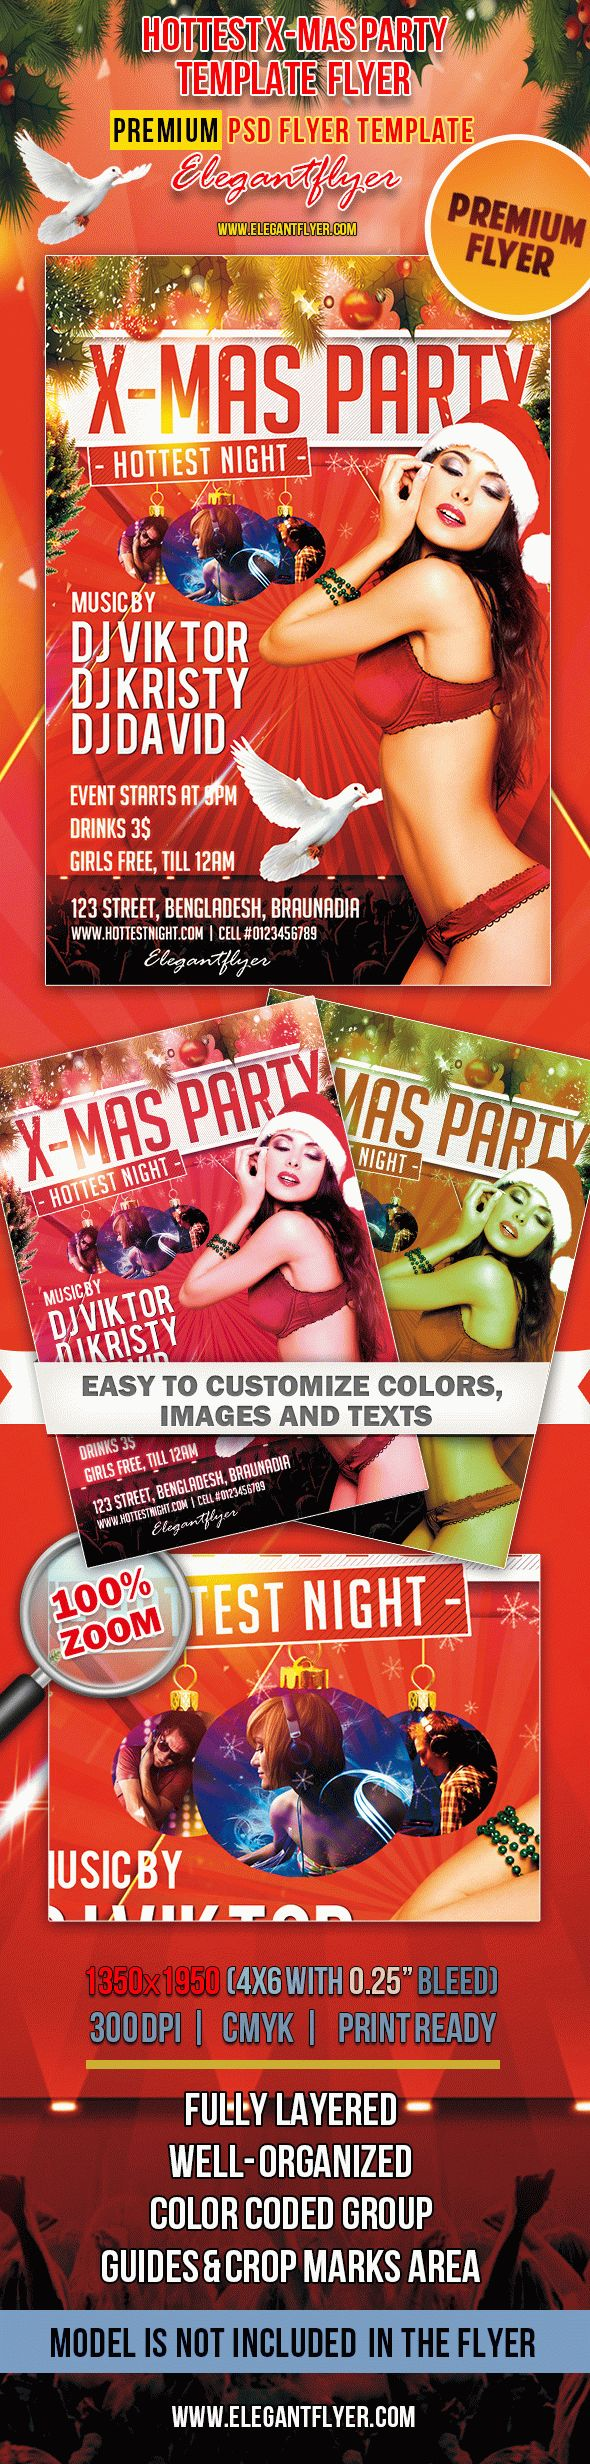 Hottest X-Mas Party Music Flyer